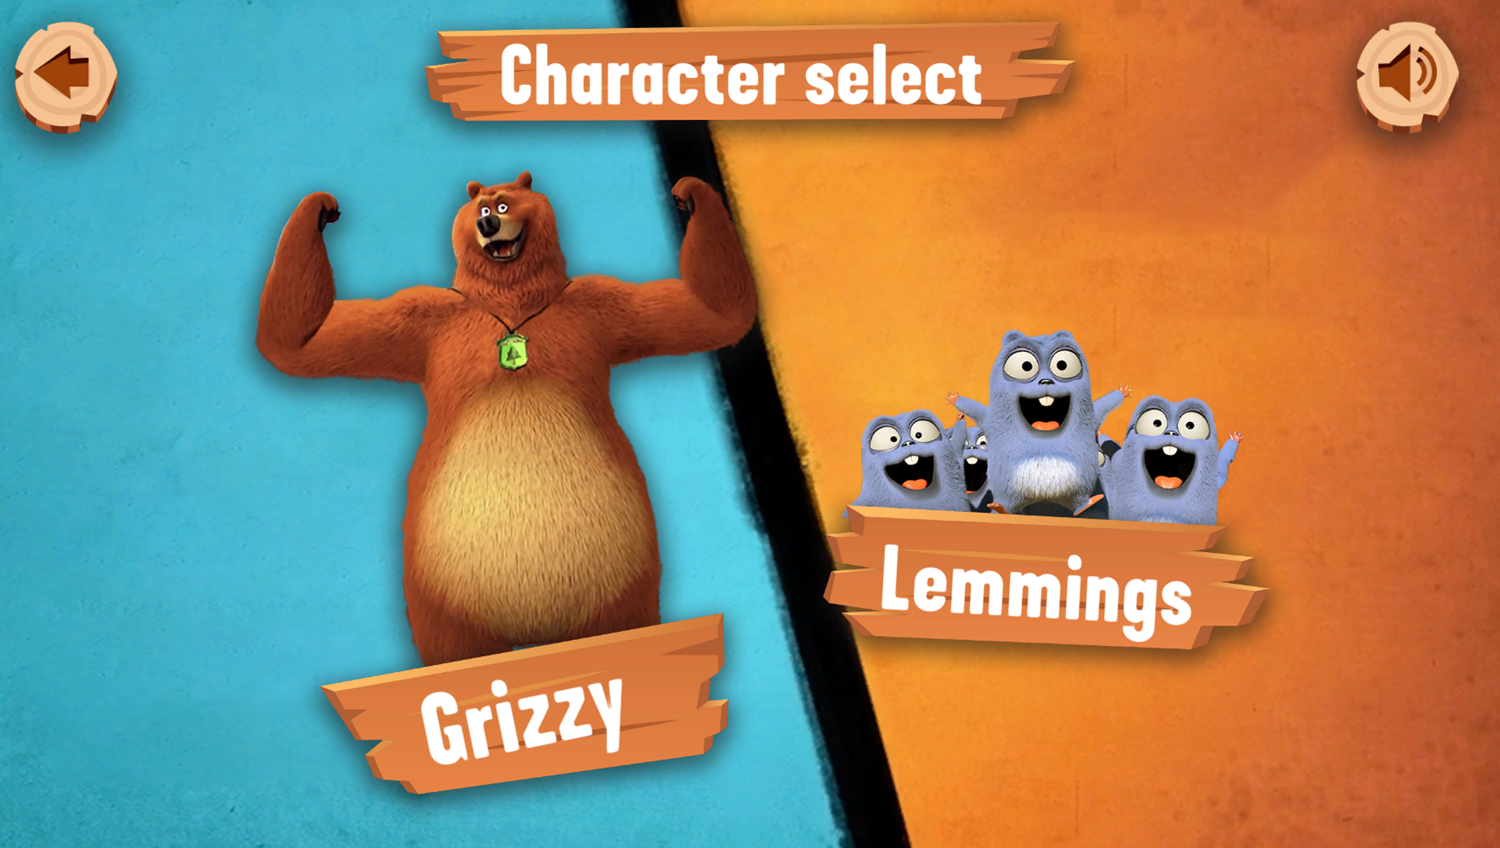 Grizzy and the Lemmings Yummy Run Game Welcome Screen Screenshot.